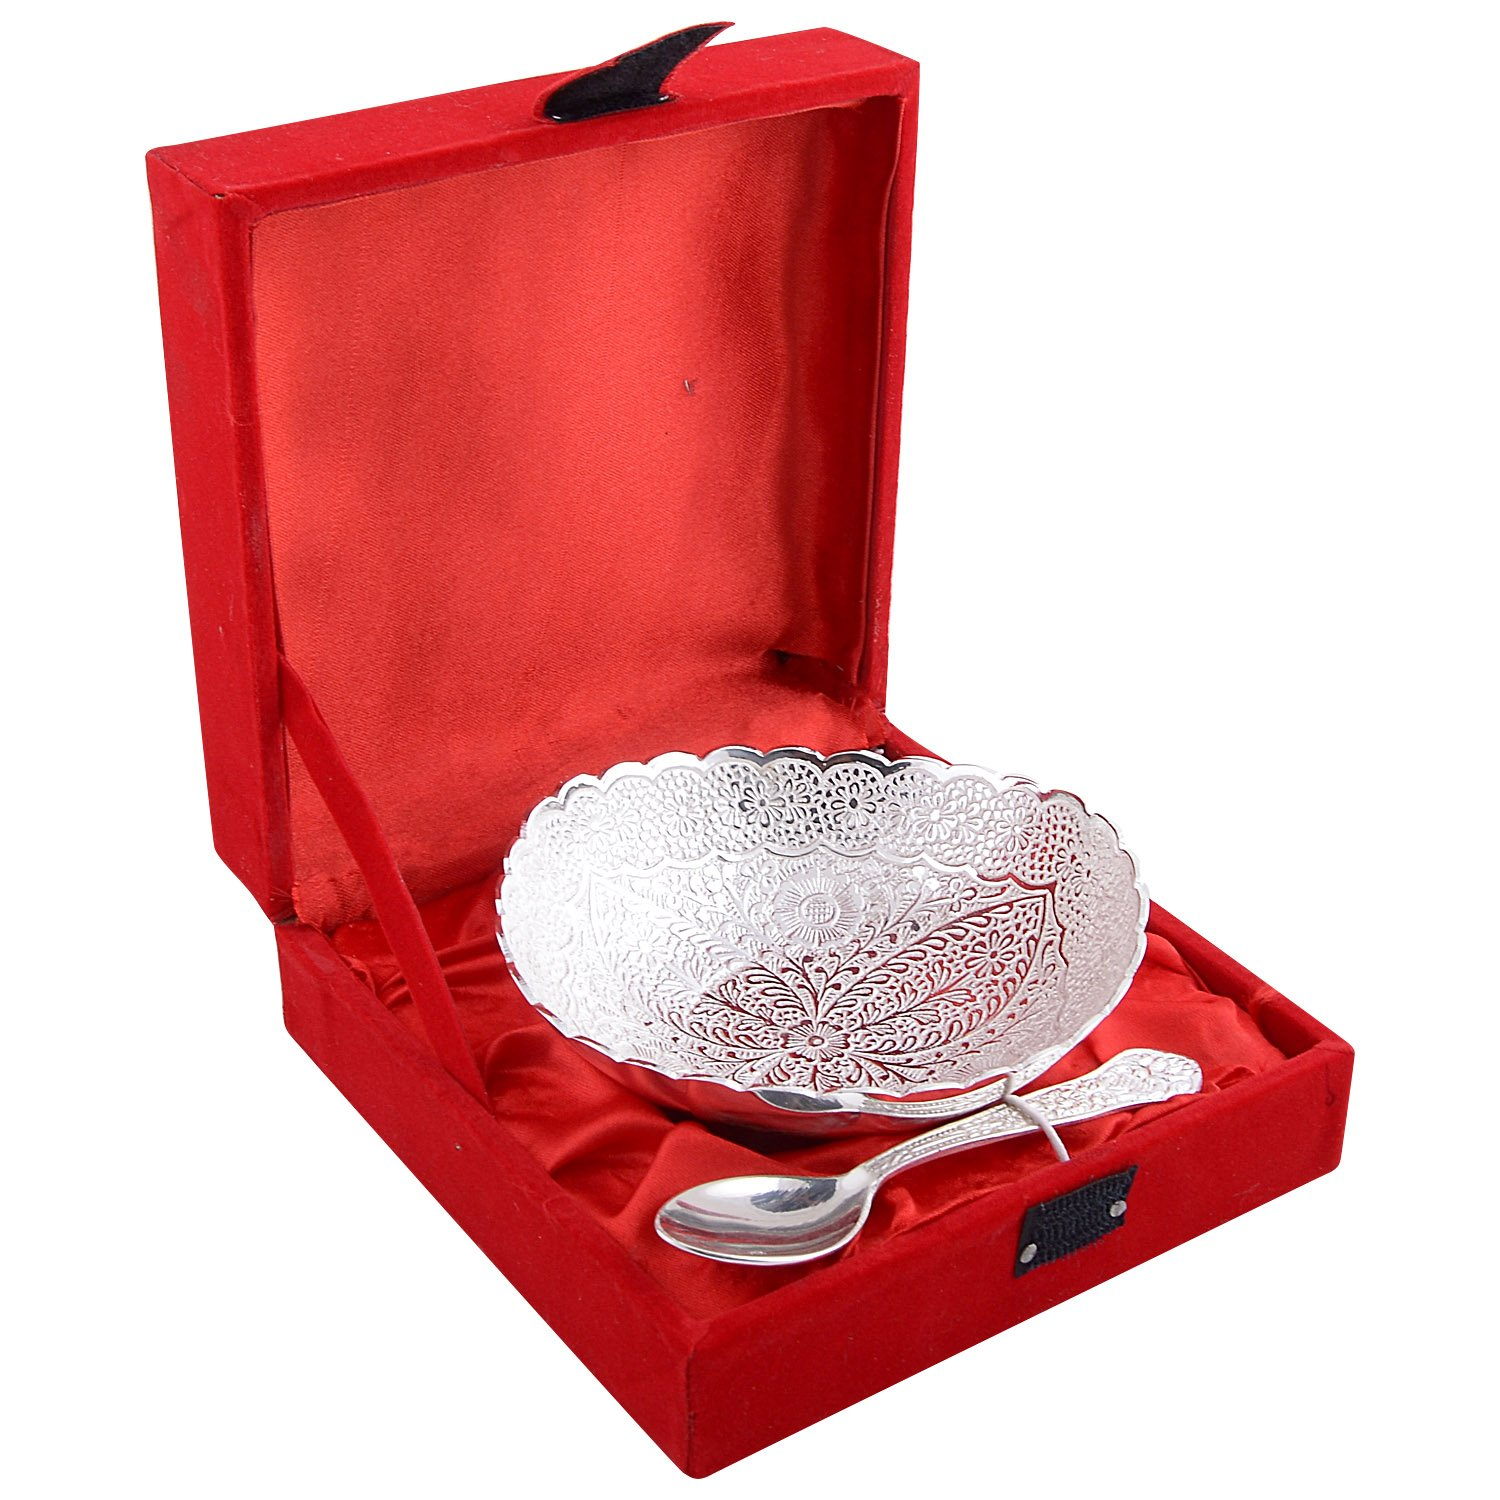 Buy German Silver Tray Shape Dish Gift Set Online At Low Prices In